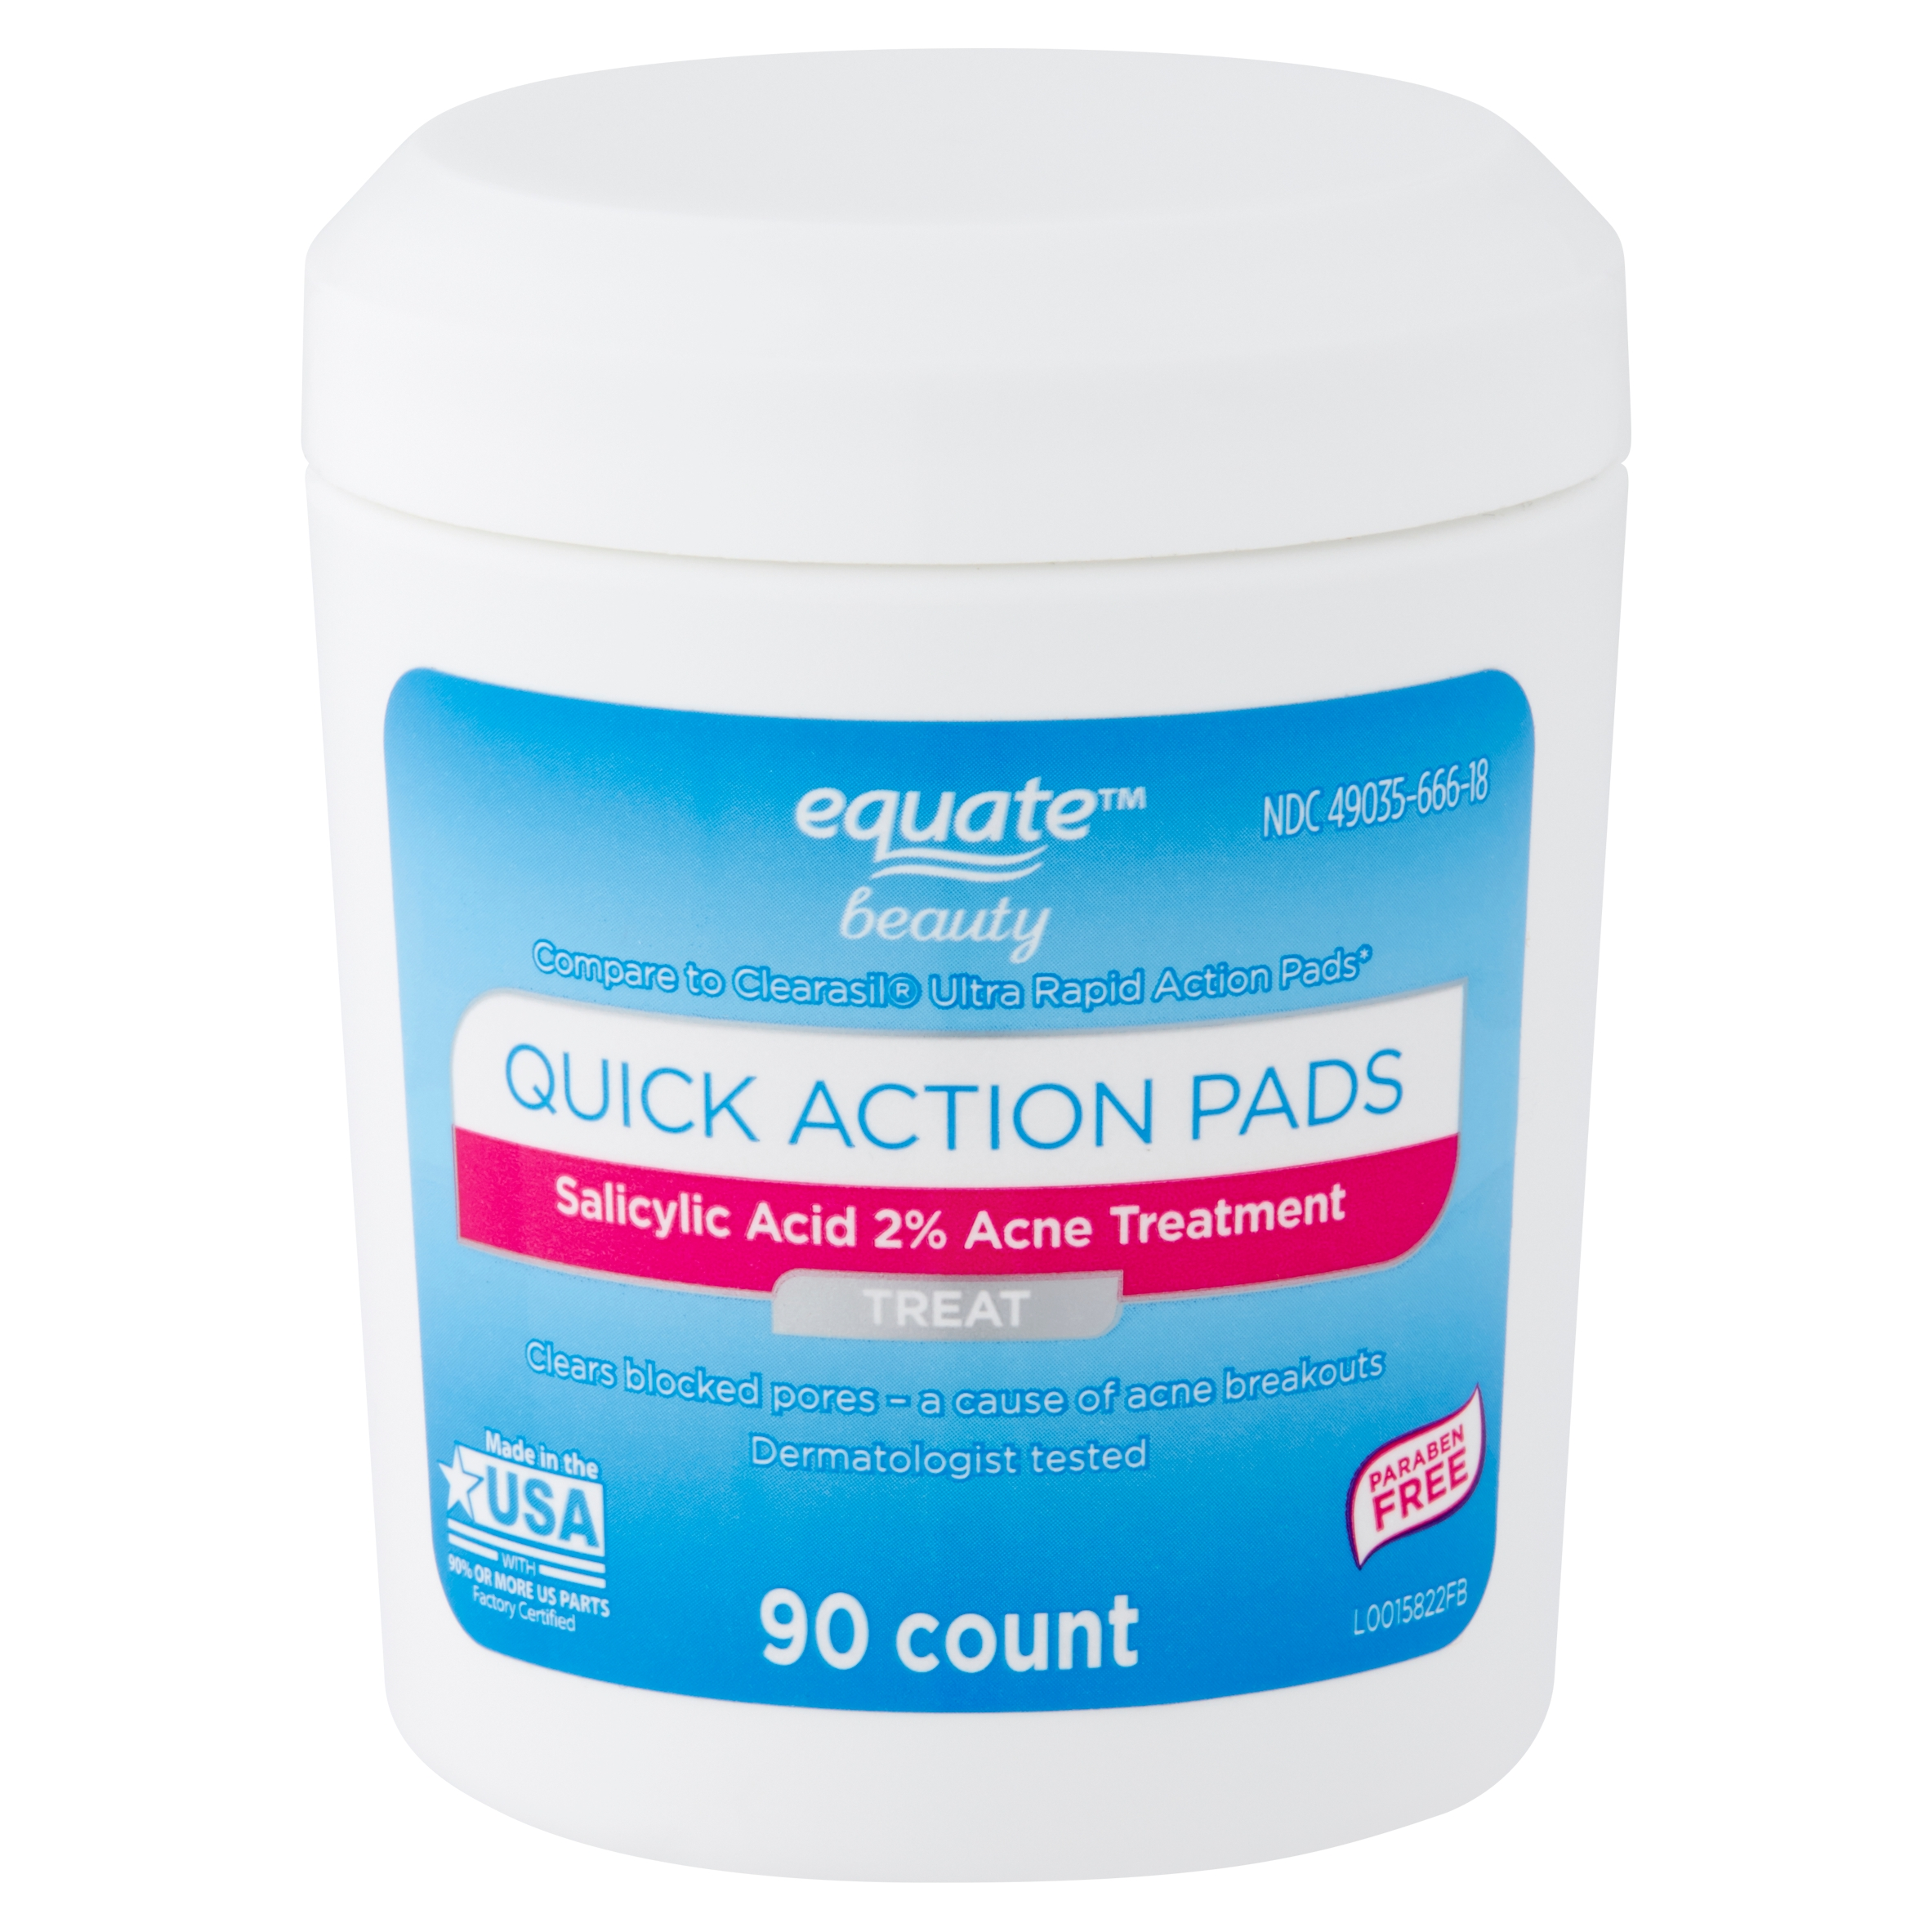 Equate Beauty Quick Action Pads 90 Count From Walmart In Dallas